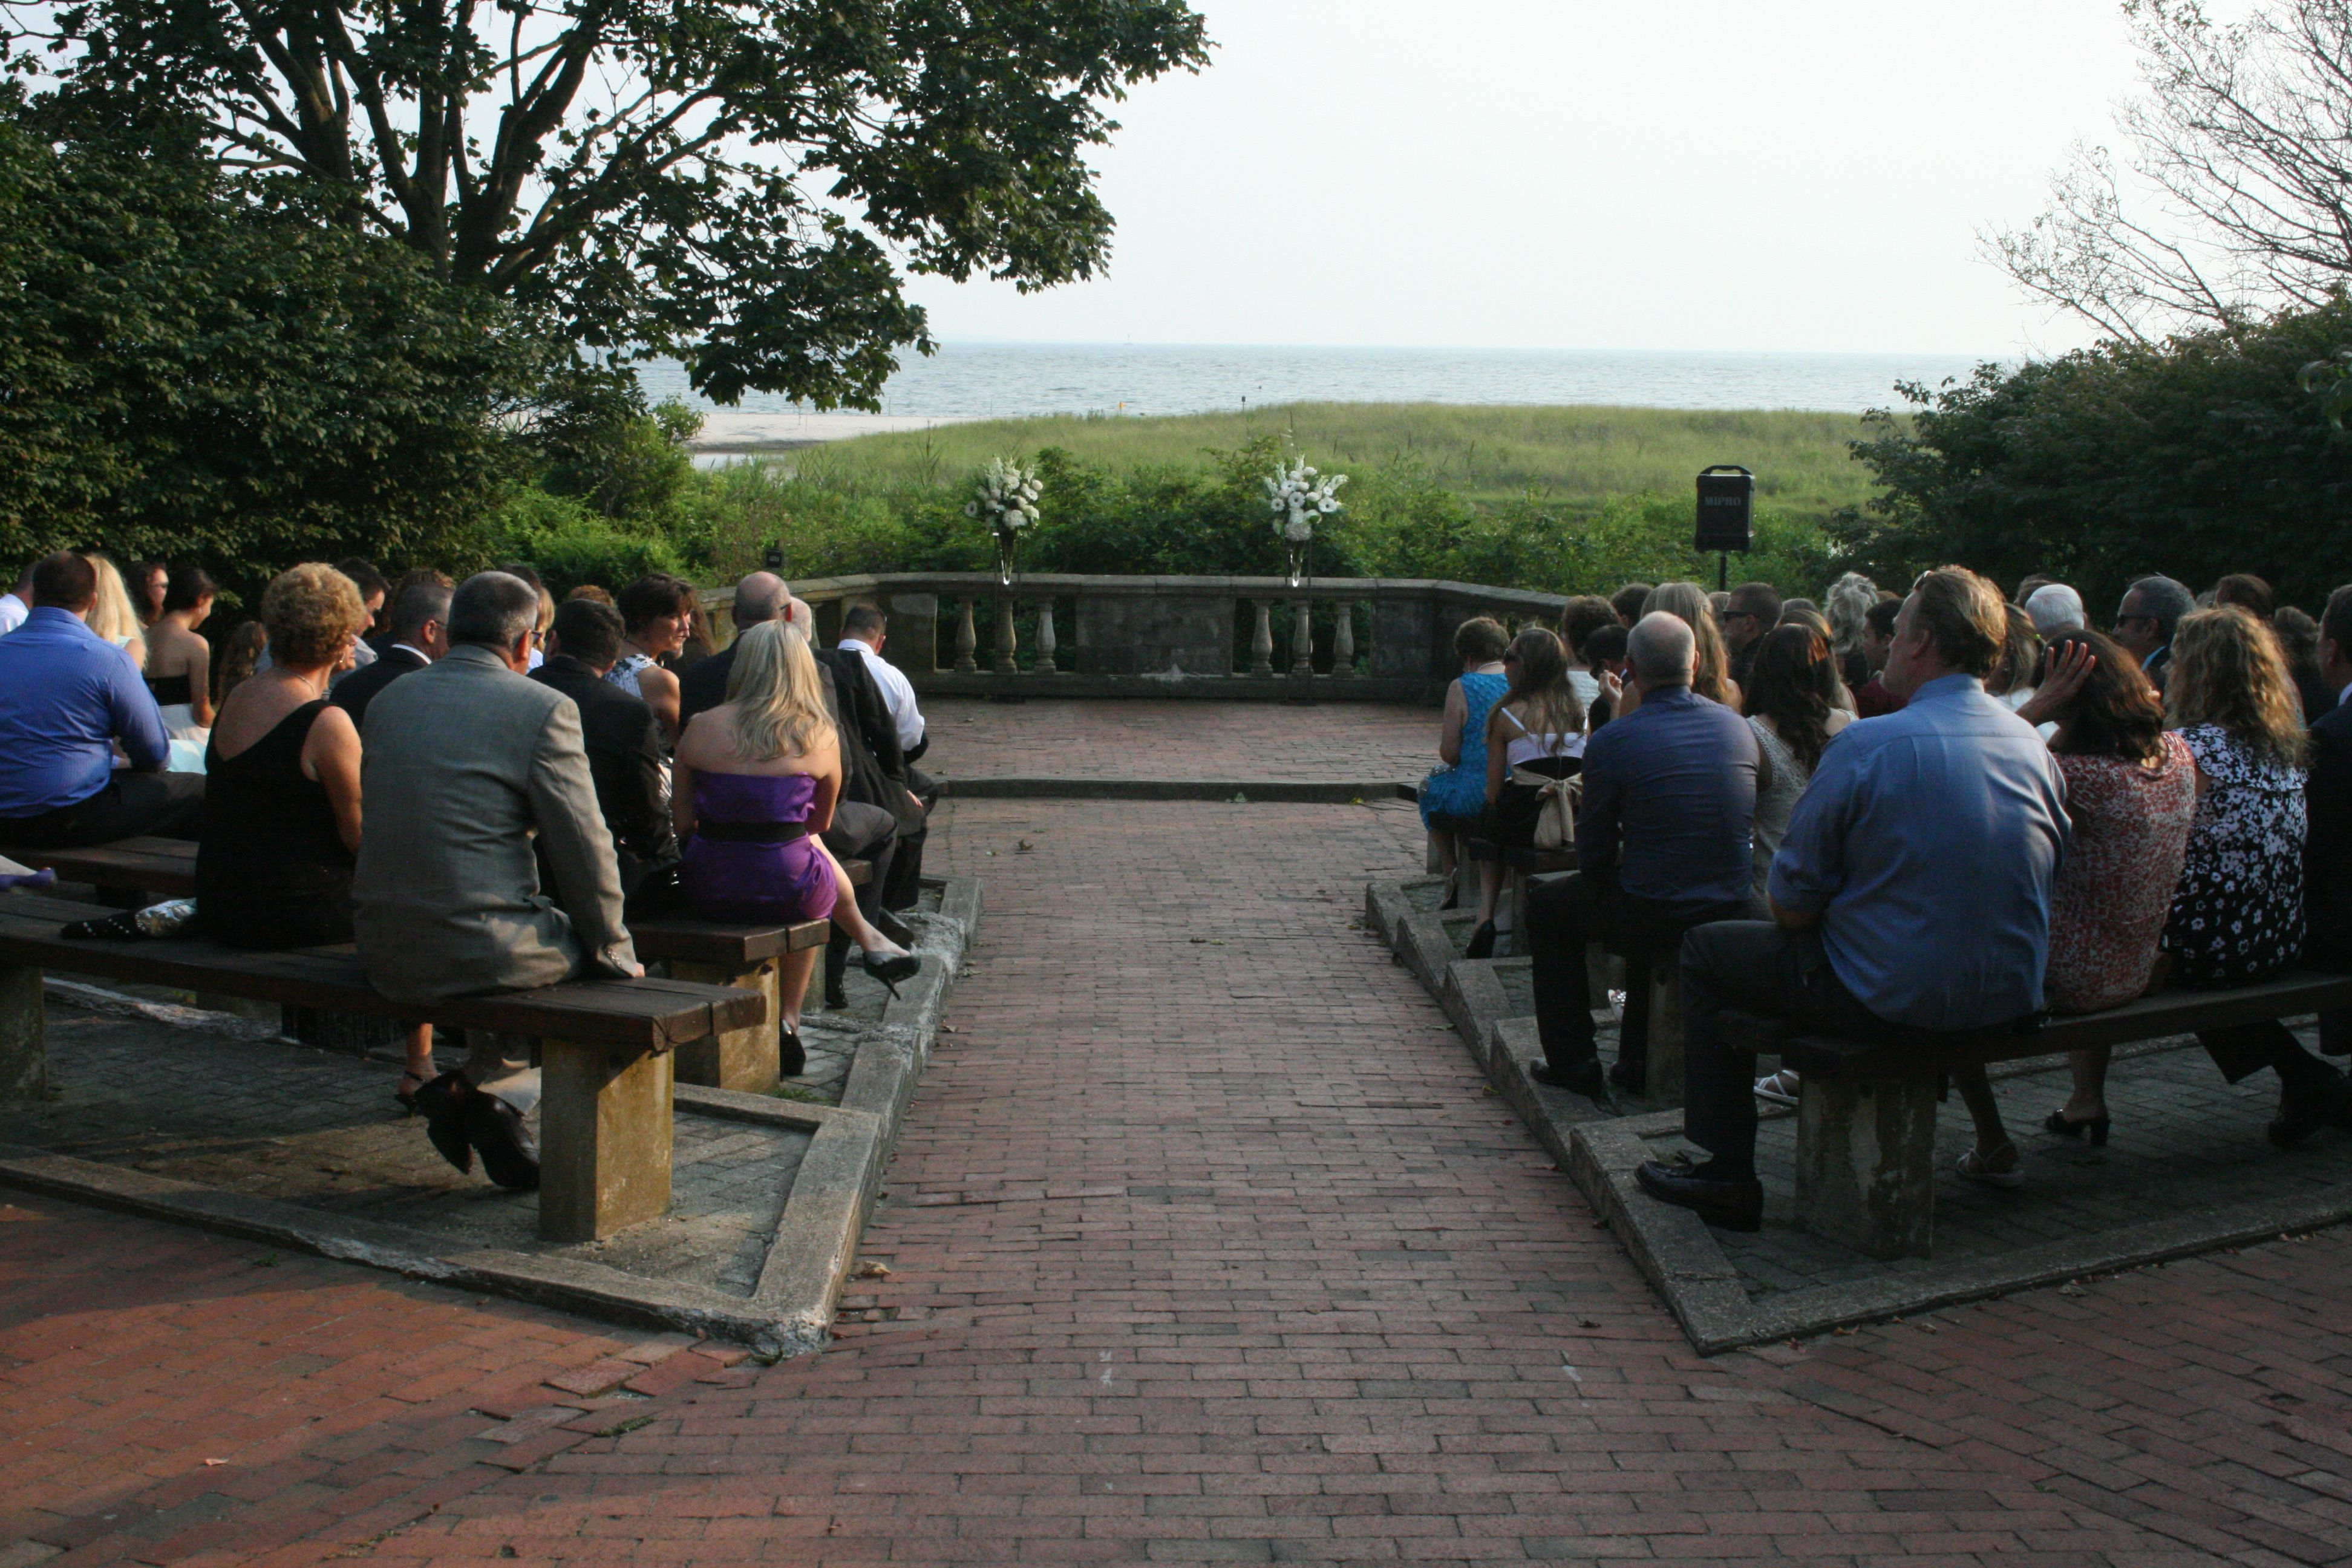 The Amphitheater At Harkness Memorial State Park Is A Popular Place For Wedding Ceremonies Here The Guests Are Relaxing Enjoying T State Parks Park Memories